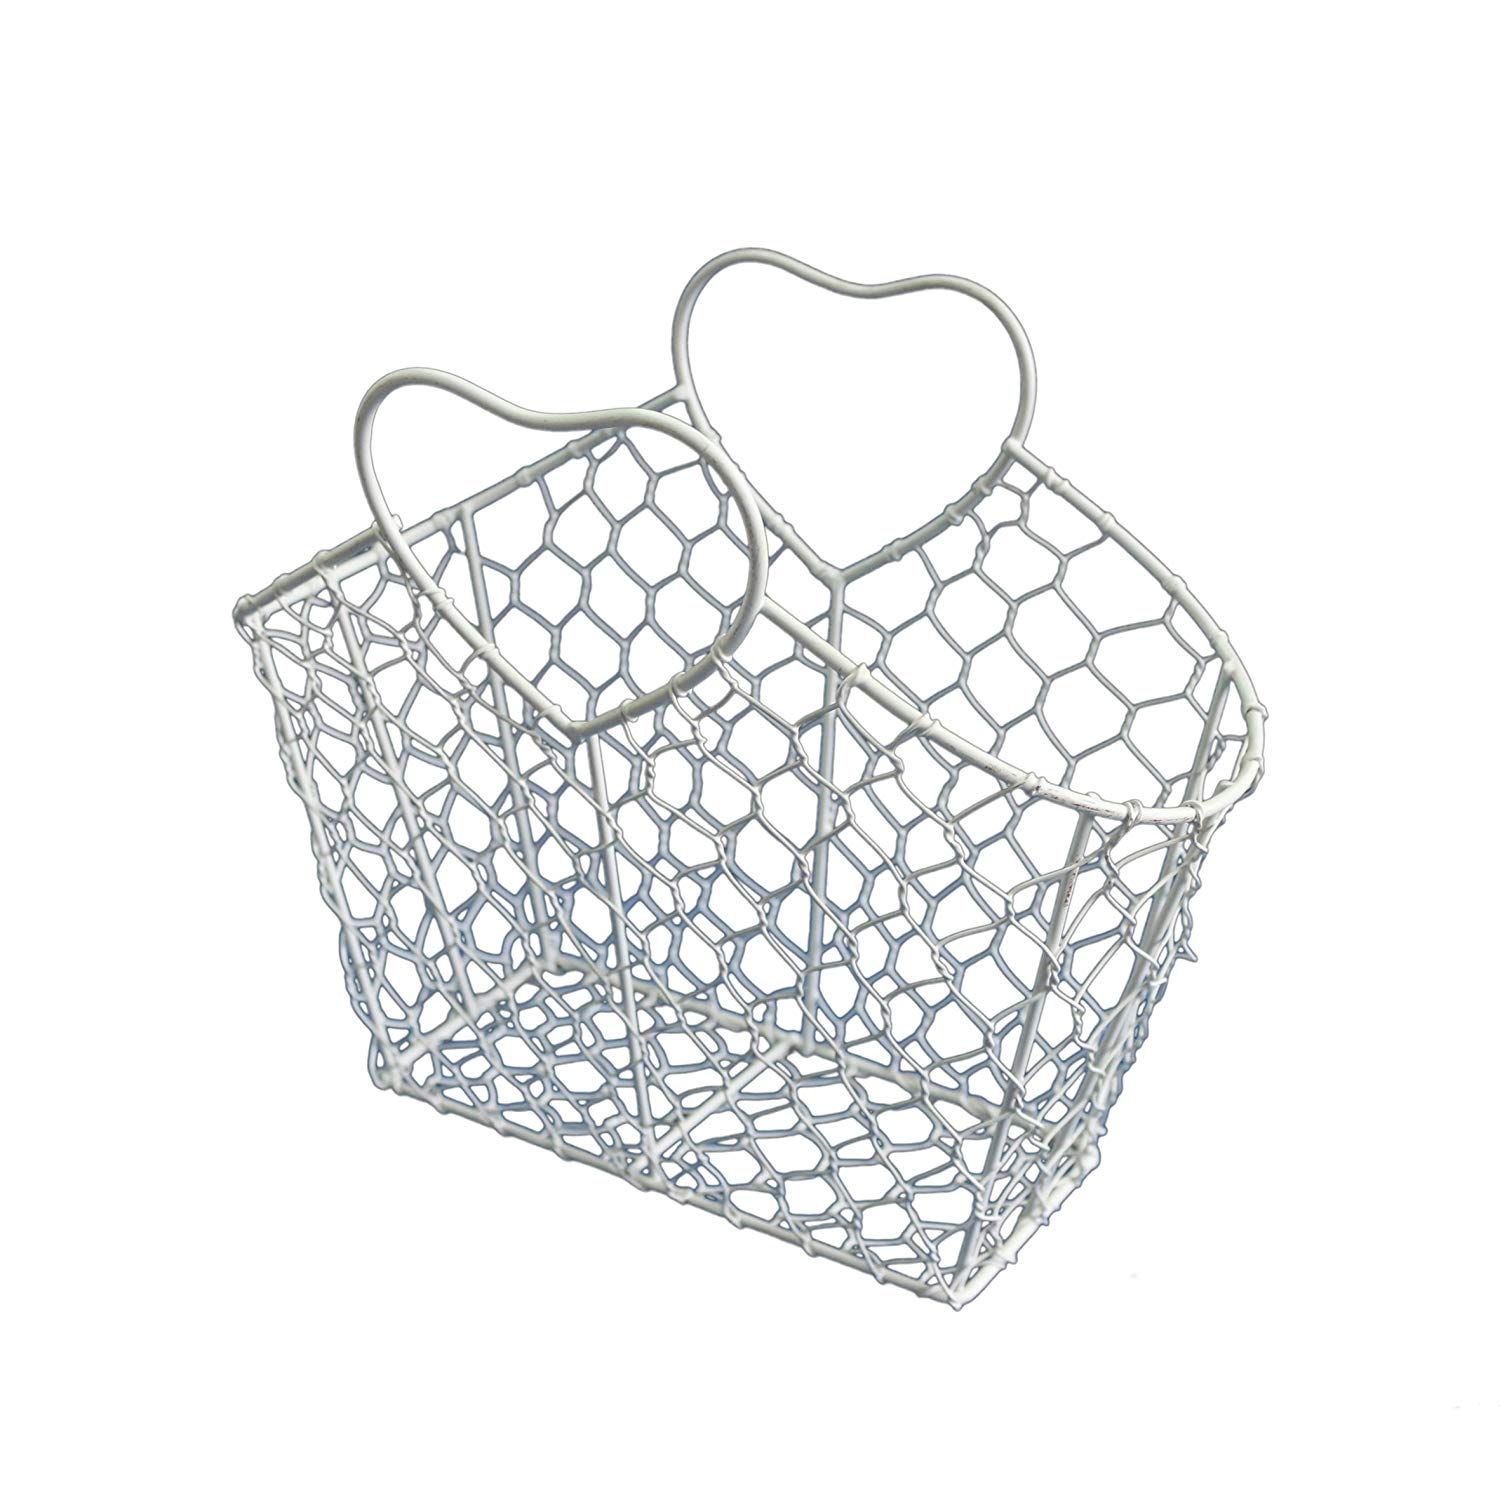 """CVHOMEDECO. Rectangle Metal Wire Egg Basket Chicken Wire Basket with Heart Shape Handle Country Vintage Style Storage Basket. White, 11-1/4""""L X 5-1/2""""W X 9-3/8""""H."""